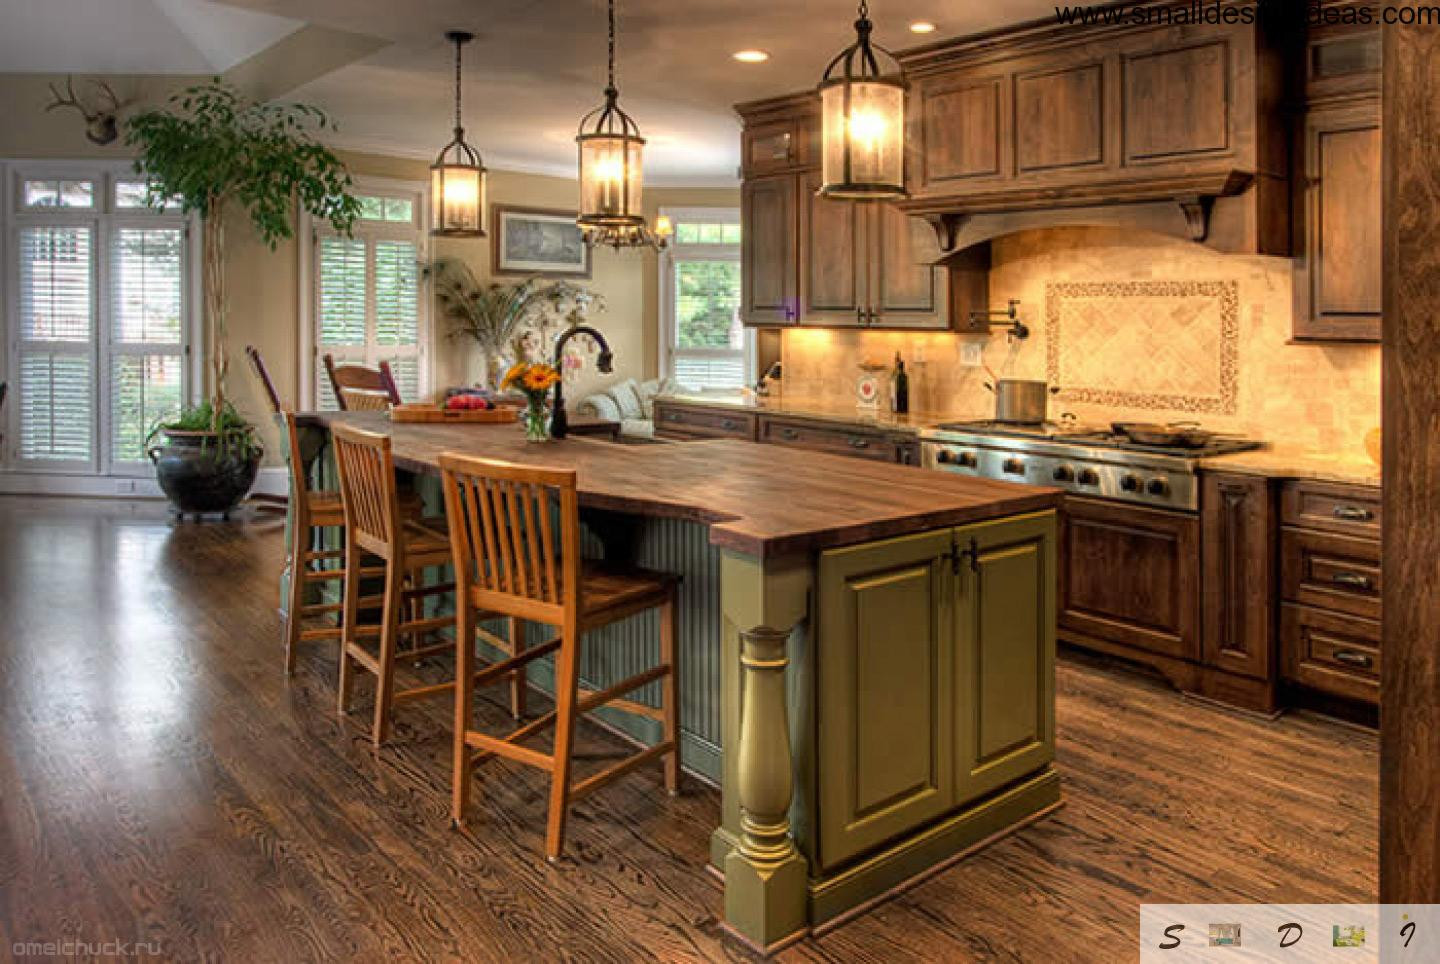 Best ideas about Country Kitchen Decorating Idea . Save or Pin Country Kitchen Design Now.